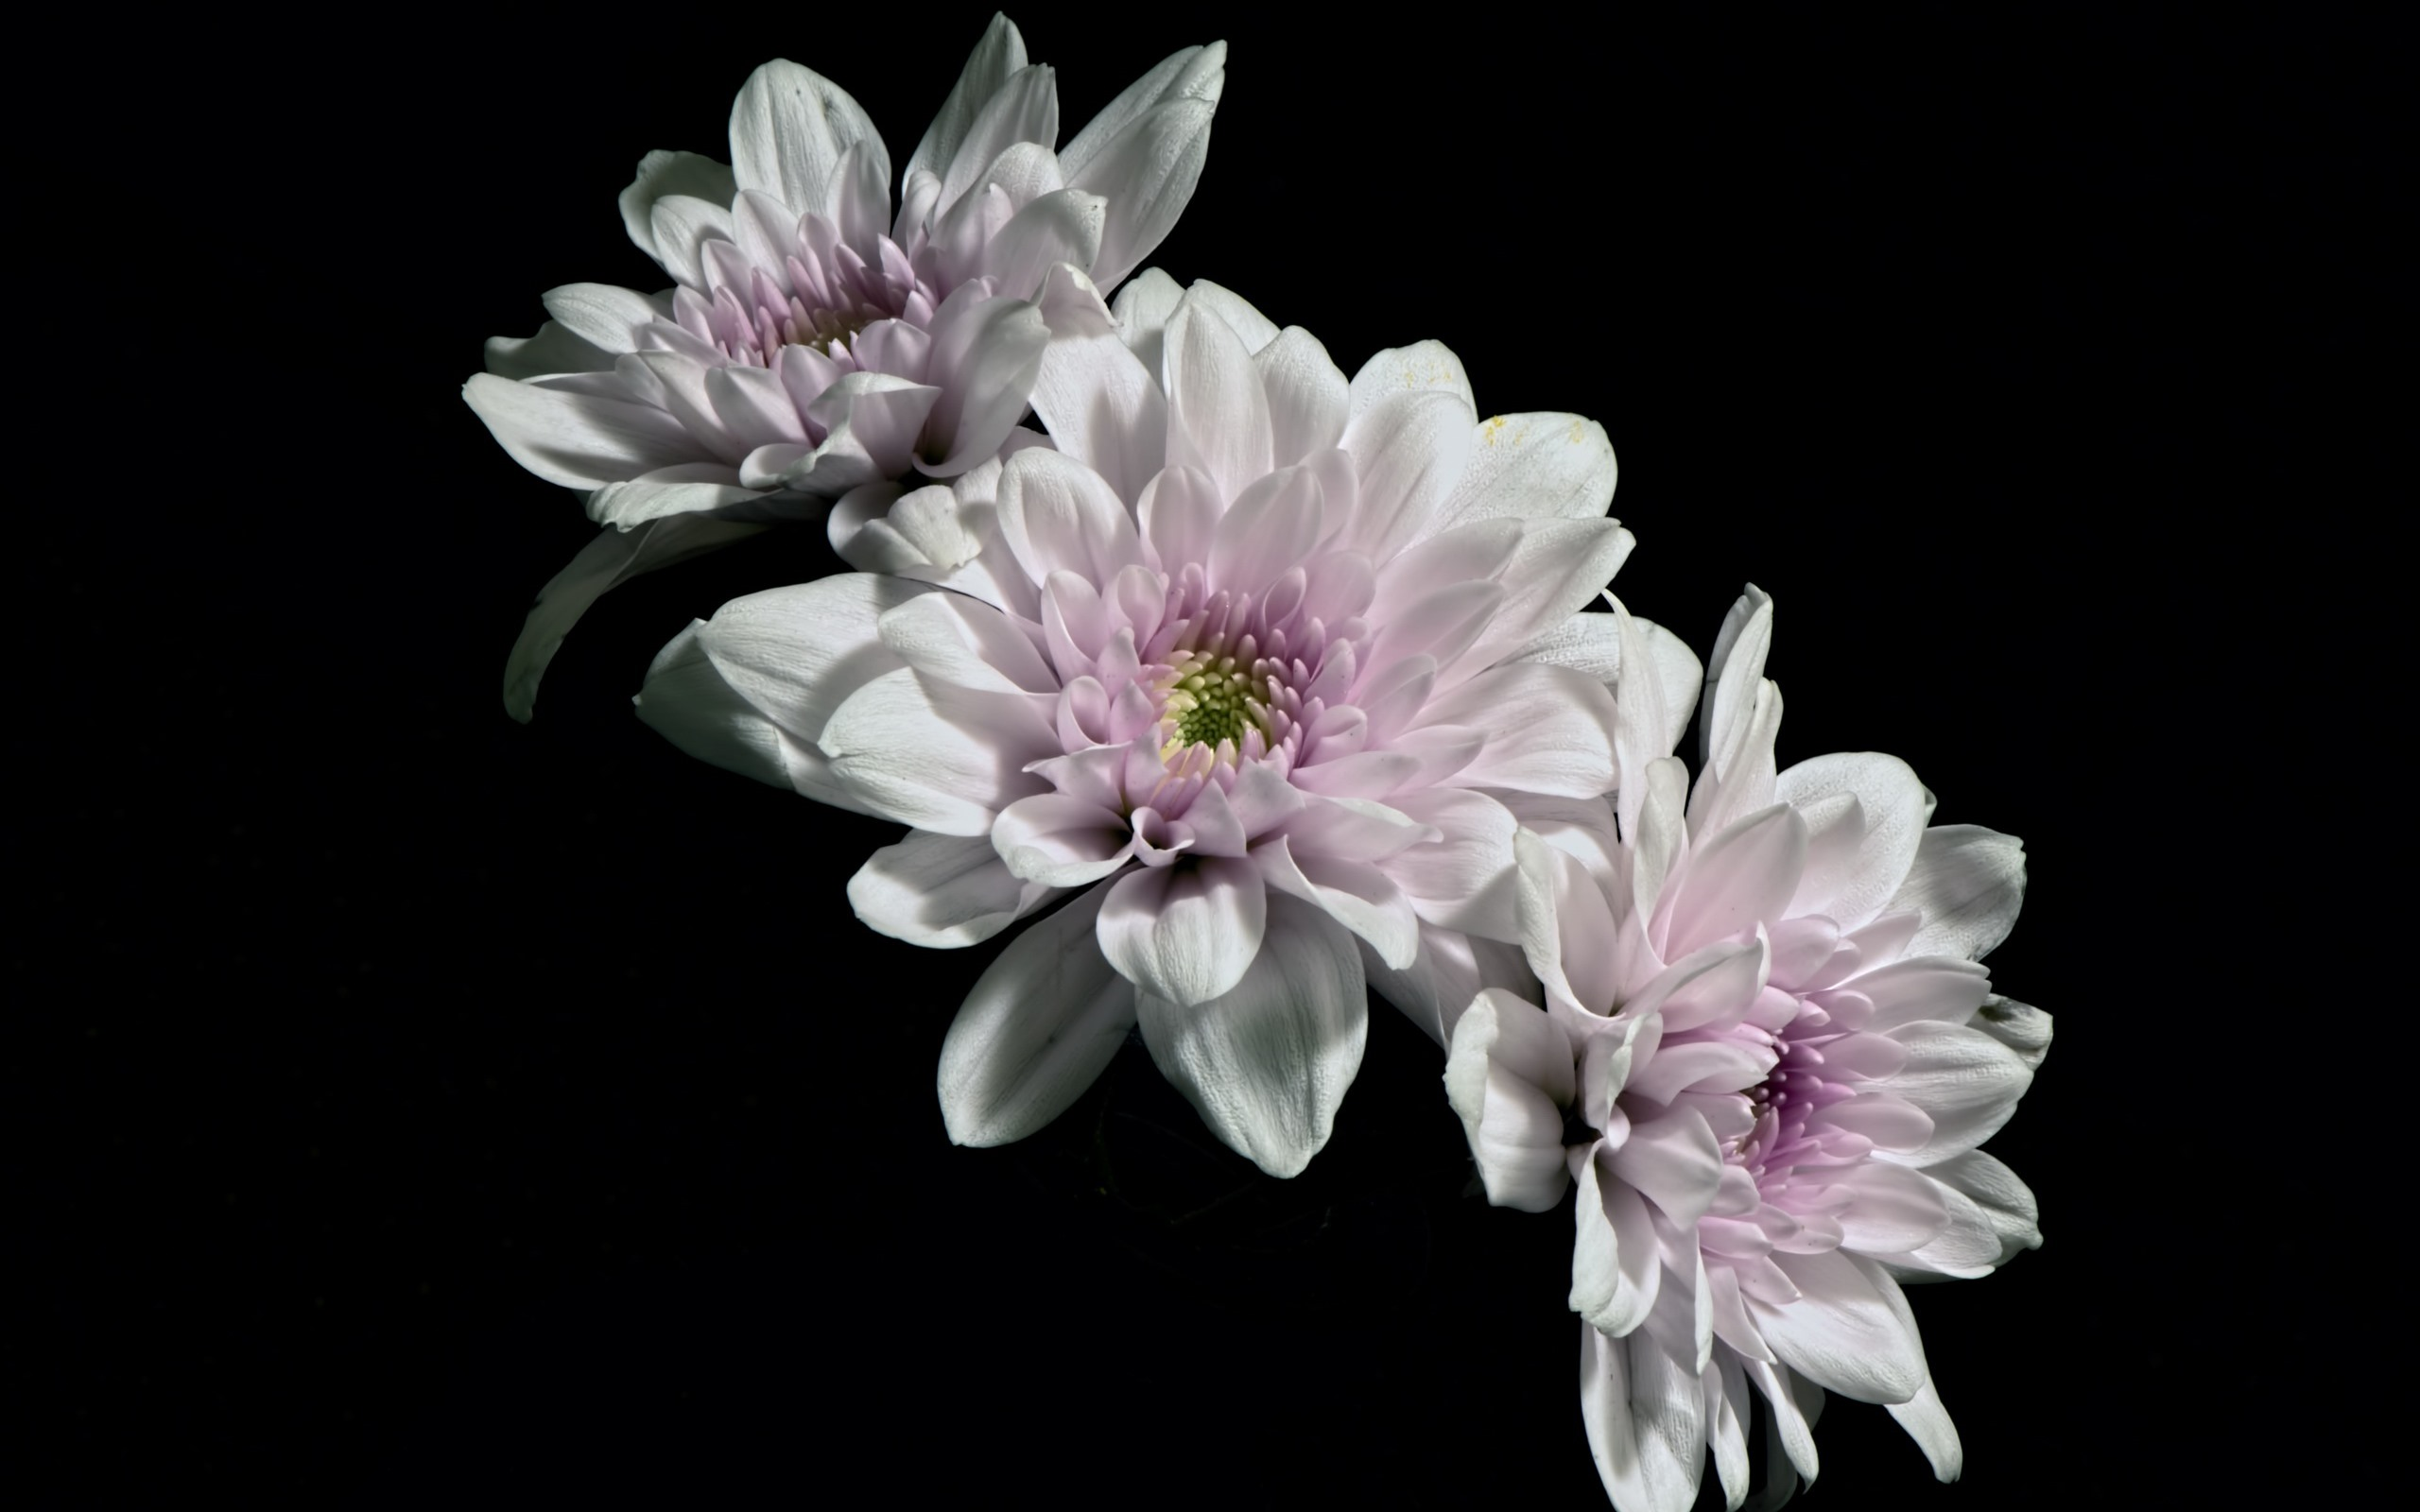 Wallpaper White Petals Flowers Black Background 2560x1600 Hd Picture Image